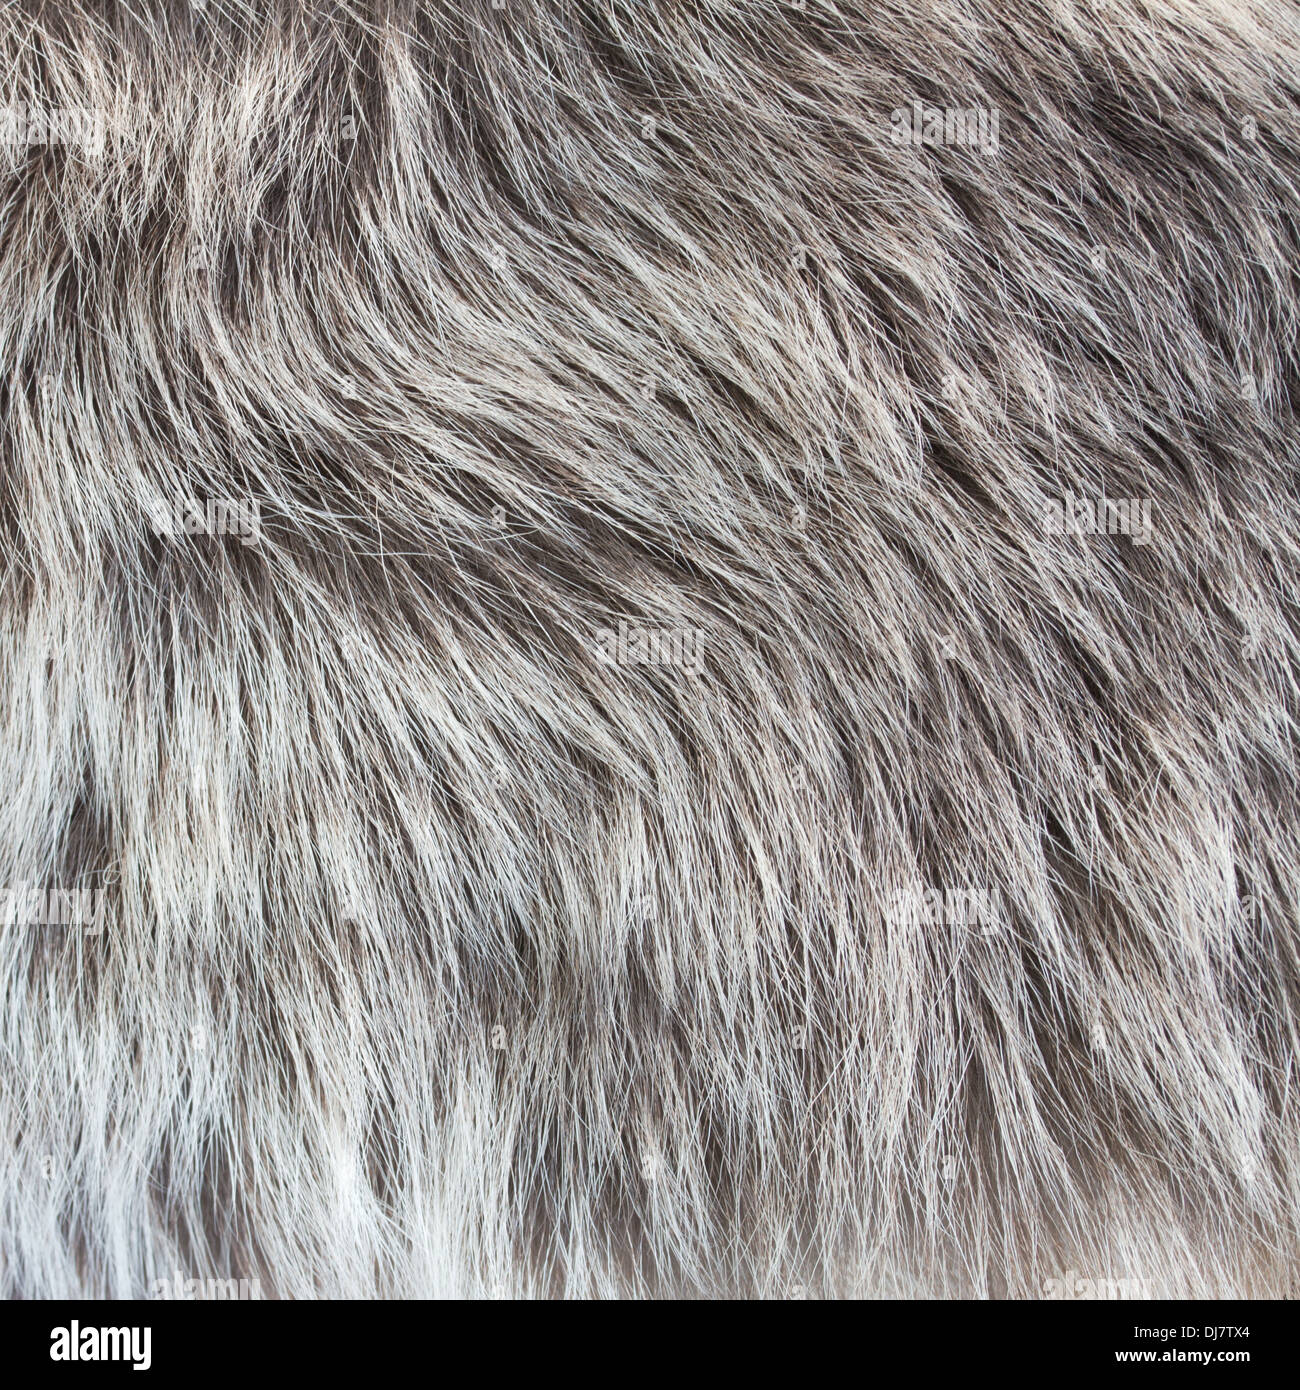 abstract fur background - Stock Image